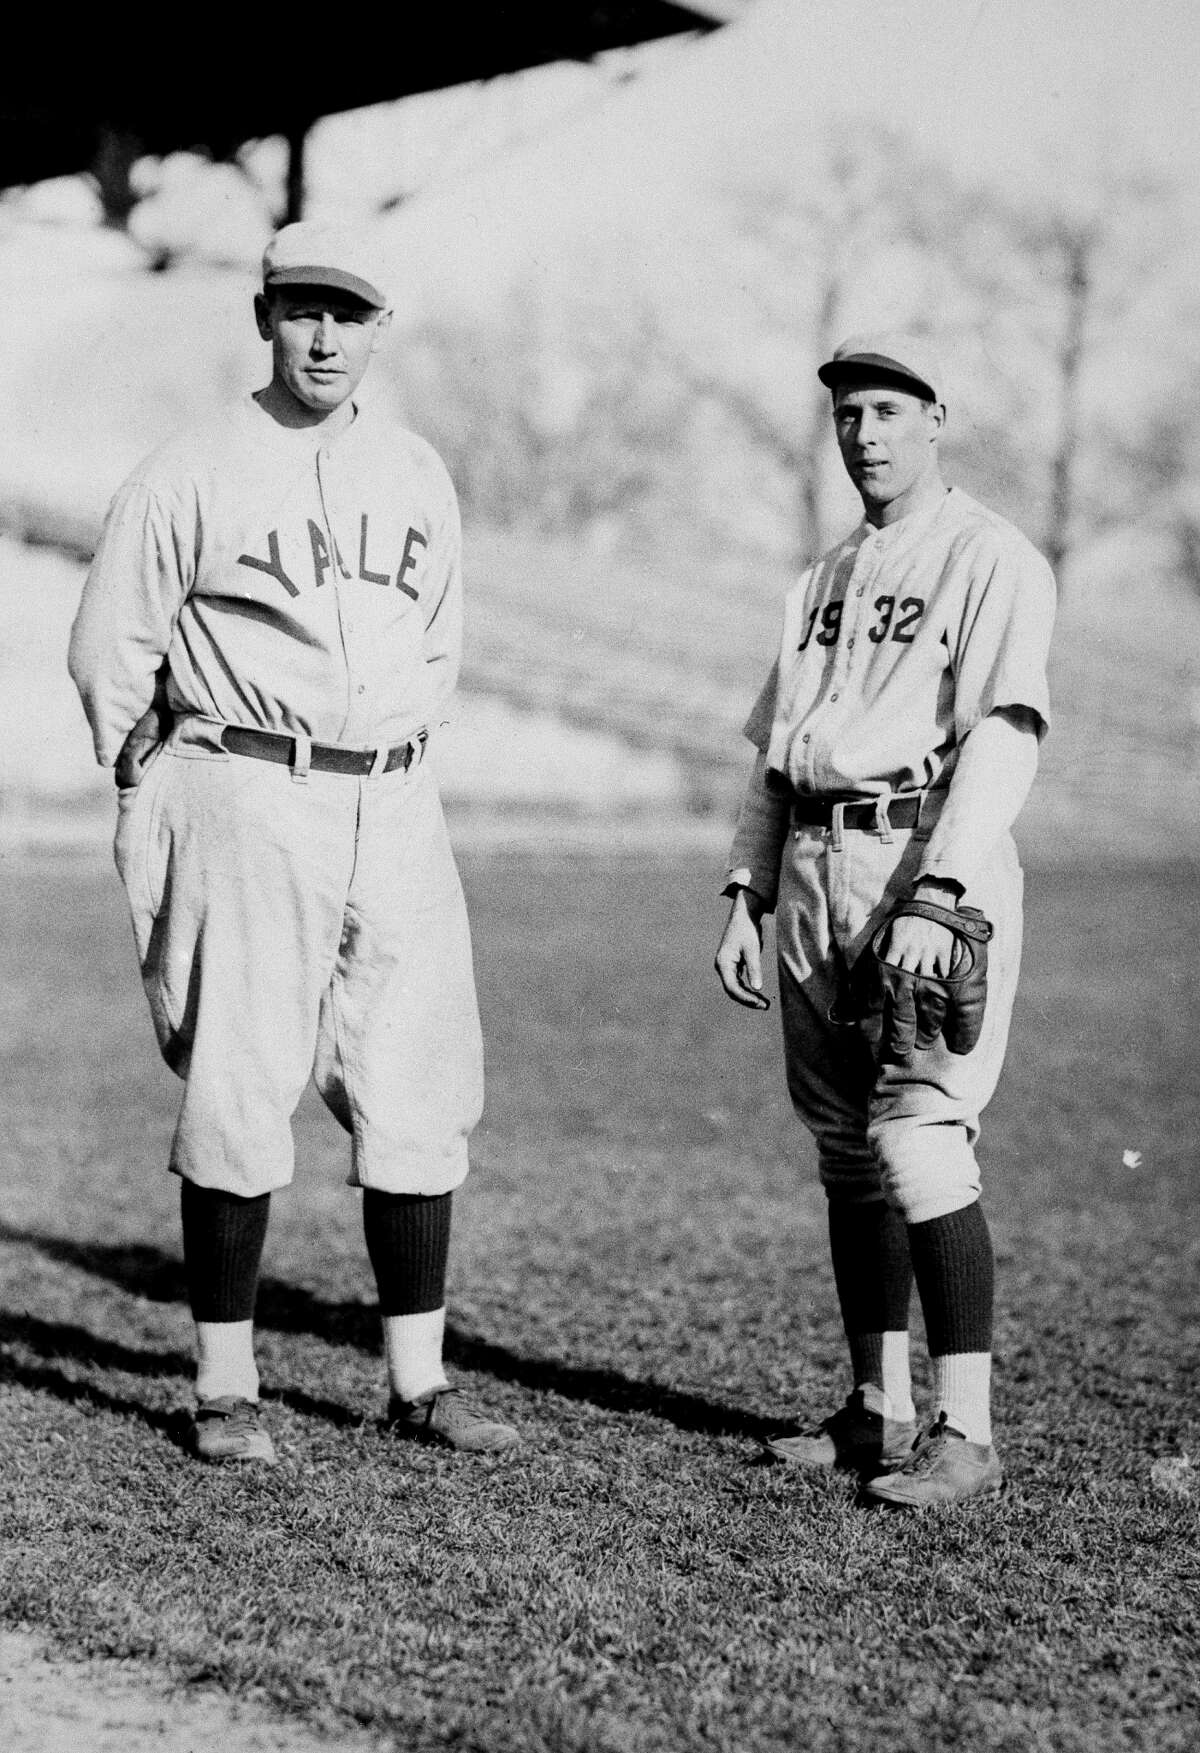 Albie Booth, right, Yale's diminutive football flash, in a different uniform for baseball practice, March 26, 1930.